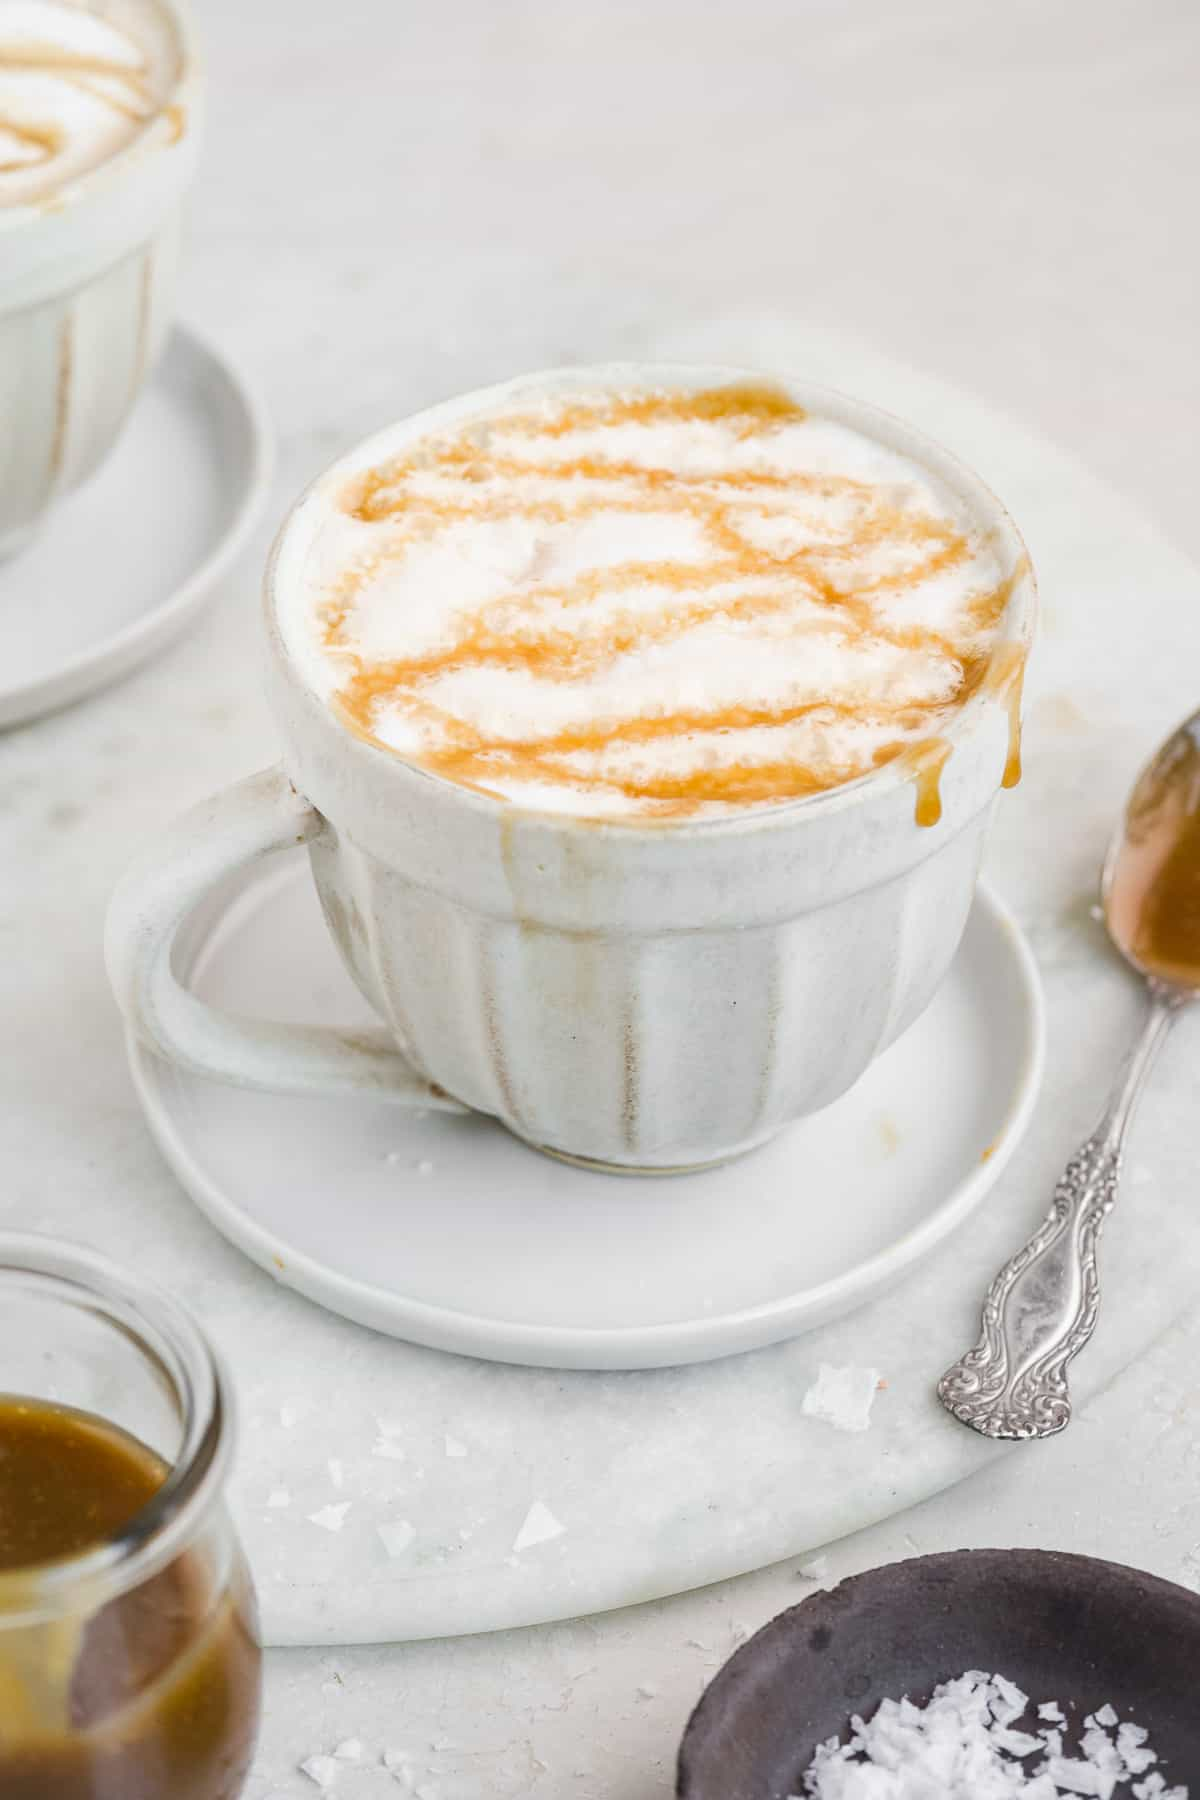 White coffee mug with frothed milk and caramel drizzled on top on a white background.